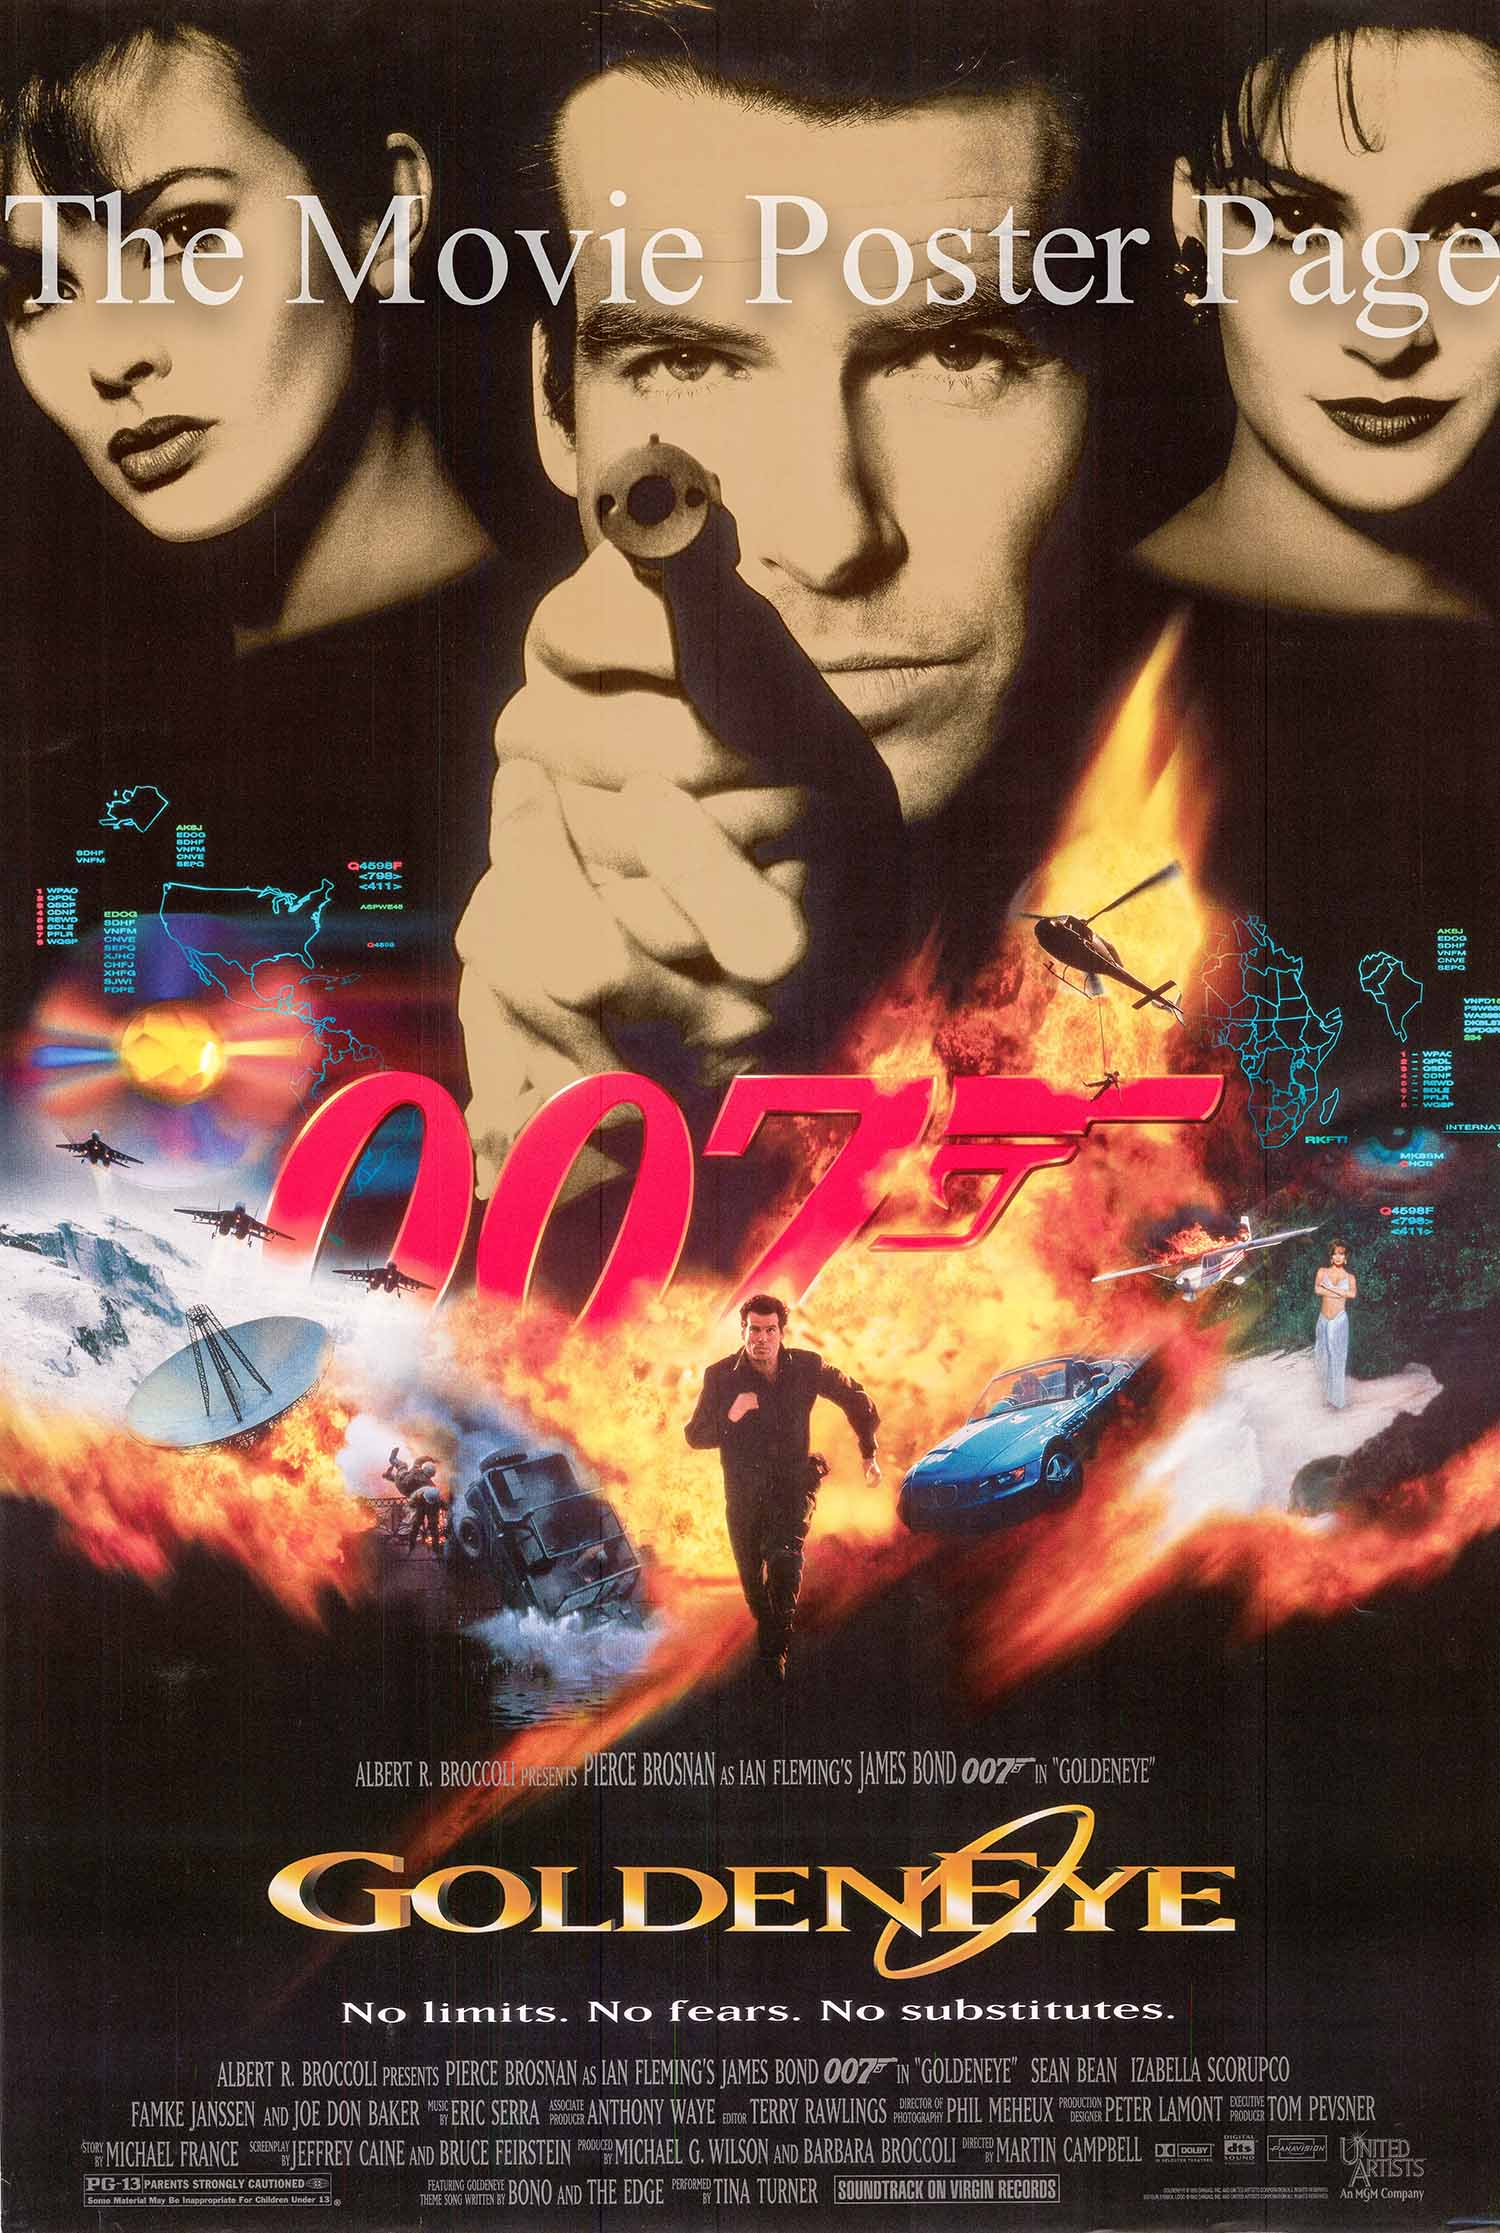 Pictured is a US advance promotional poster for the 1995 Martin Campbell film Goldeneye starring Pierce Brosnan as James Bond.